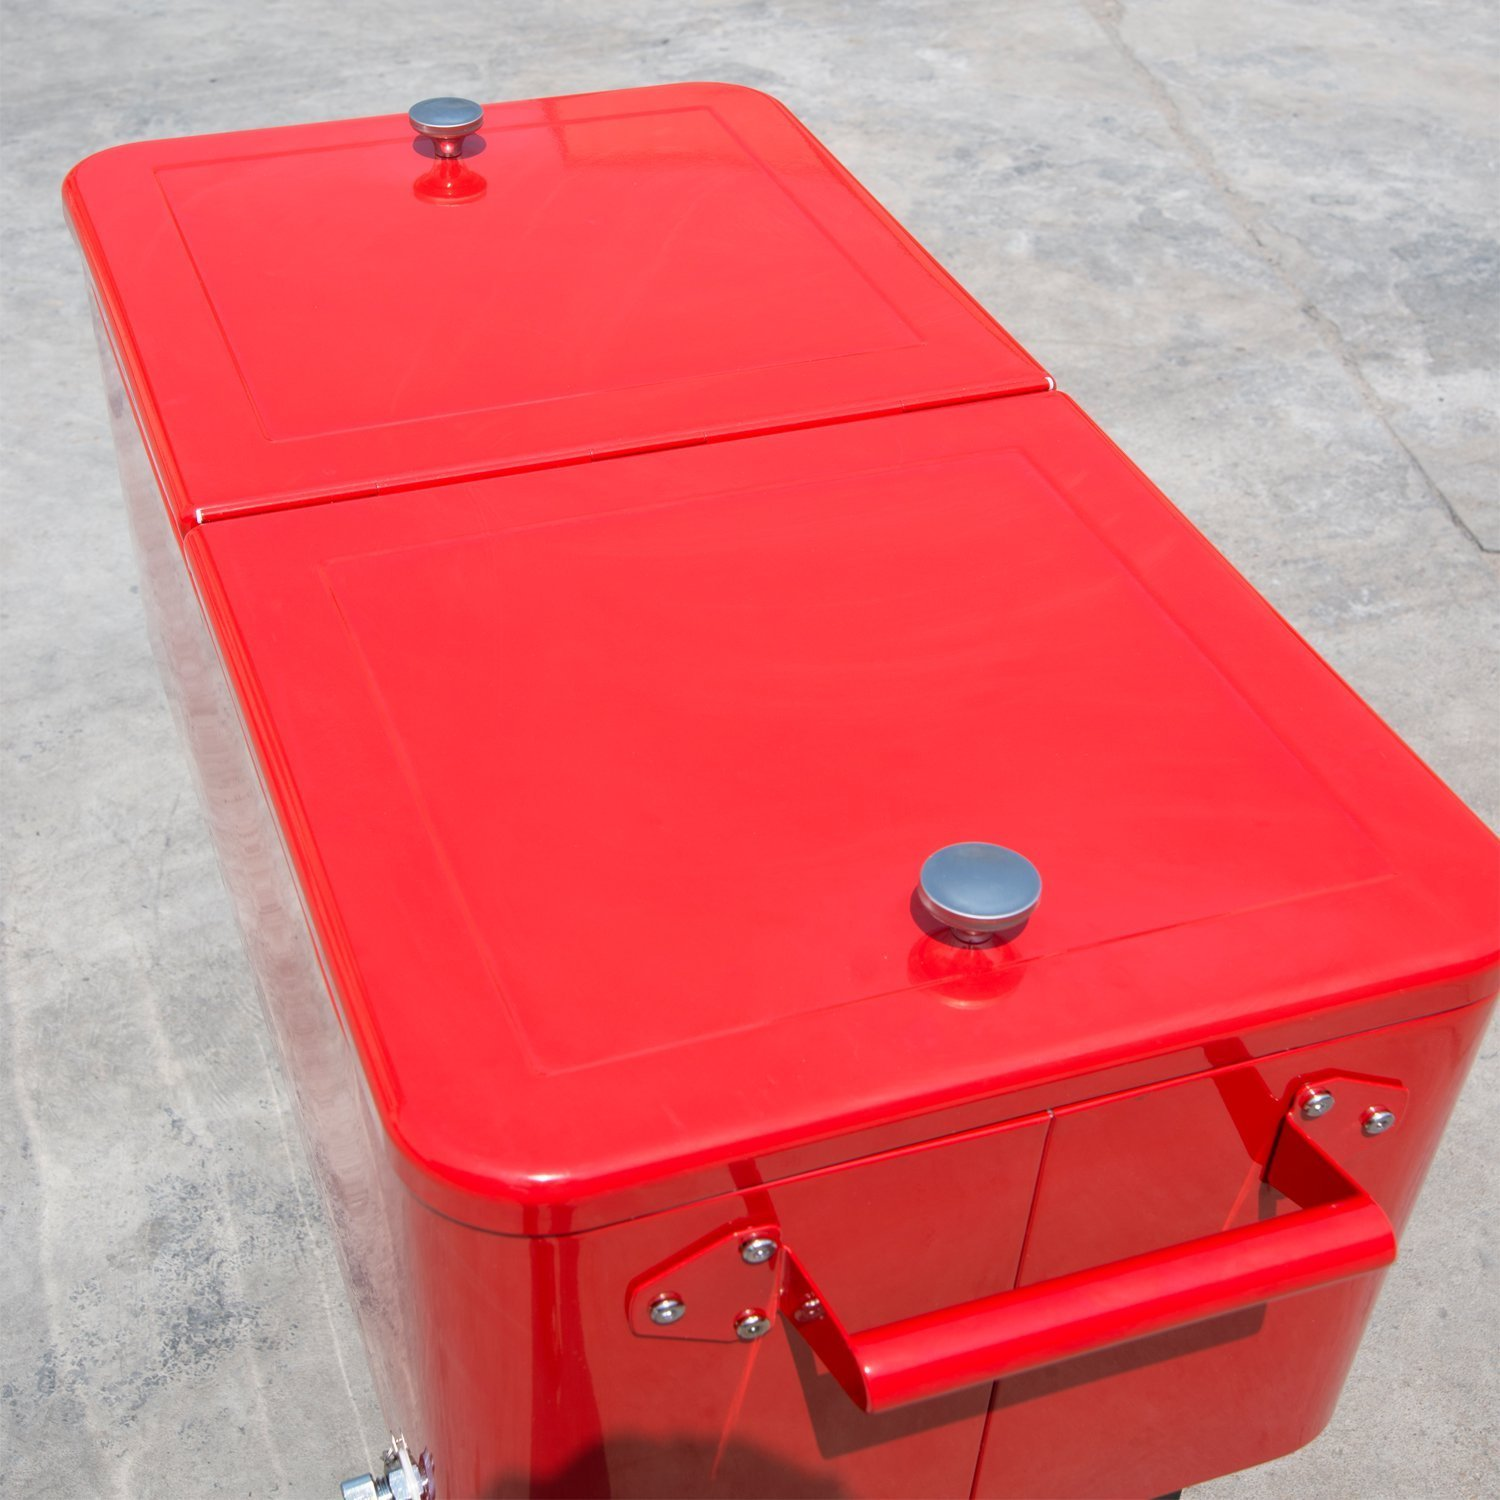 Amazon.com : Outsunny 80 QT Rolling Ice Chest Portable Patio Party Drink  Cooler Cart - Red : Patio, Lawn & Garden - Amazon.com : Outsunny 80 QT Rolling Ice Chest Portable Patio Party